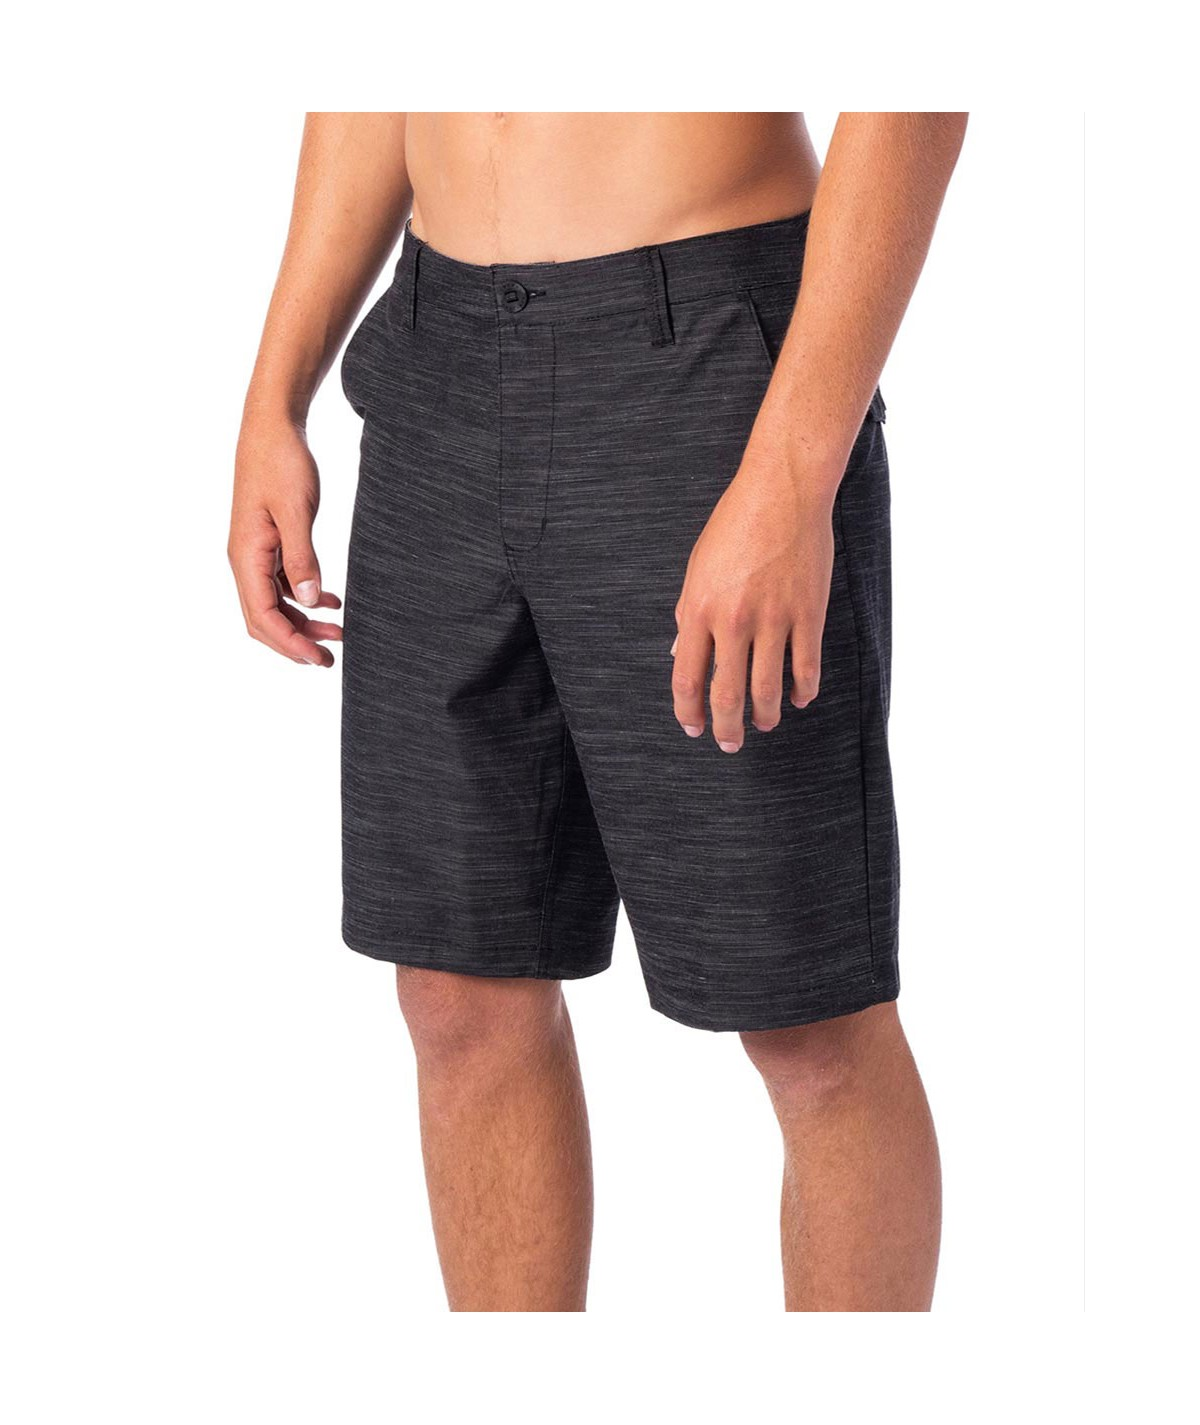 Mens Retro Romantic Lily and Lotus Breathable Beach Board Shorts Swim Trunks Quick Dry